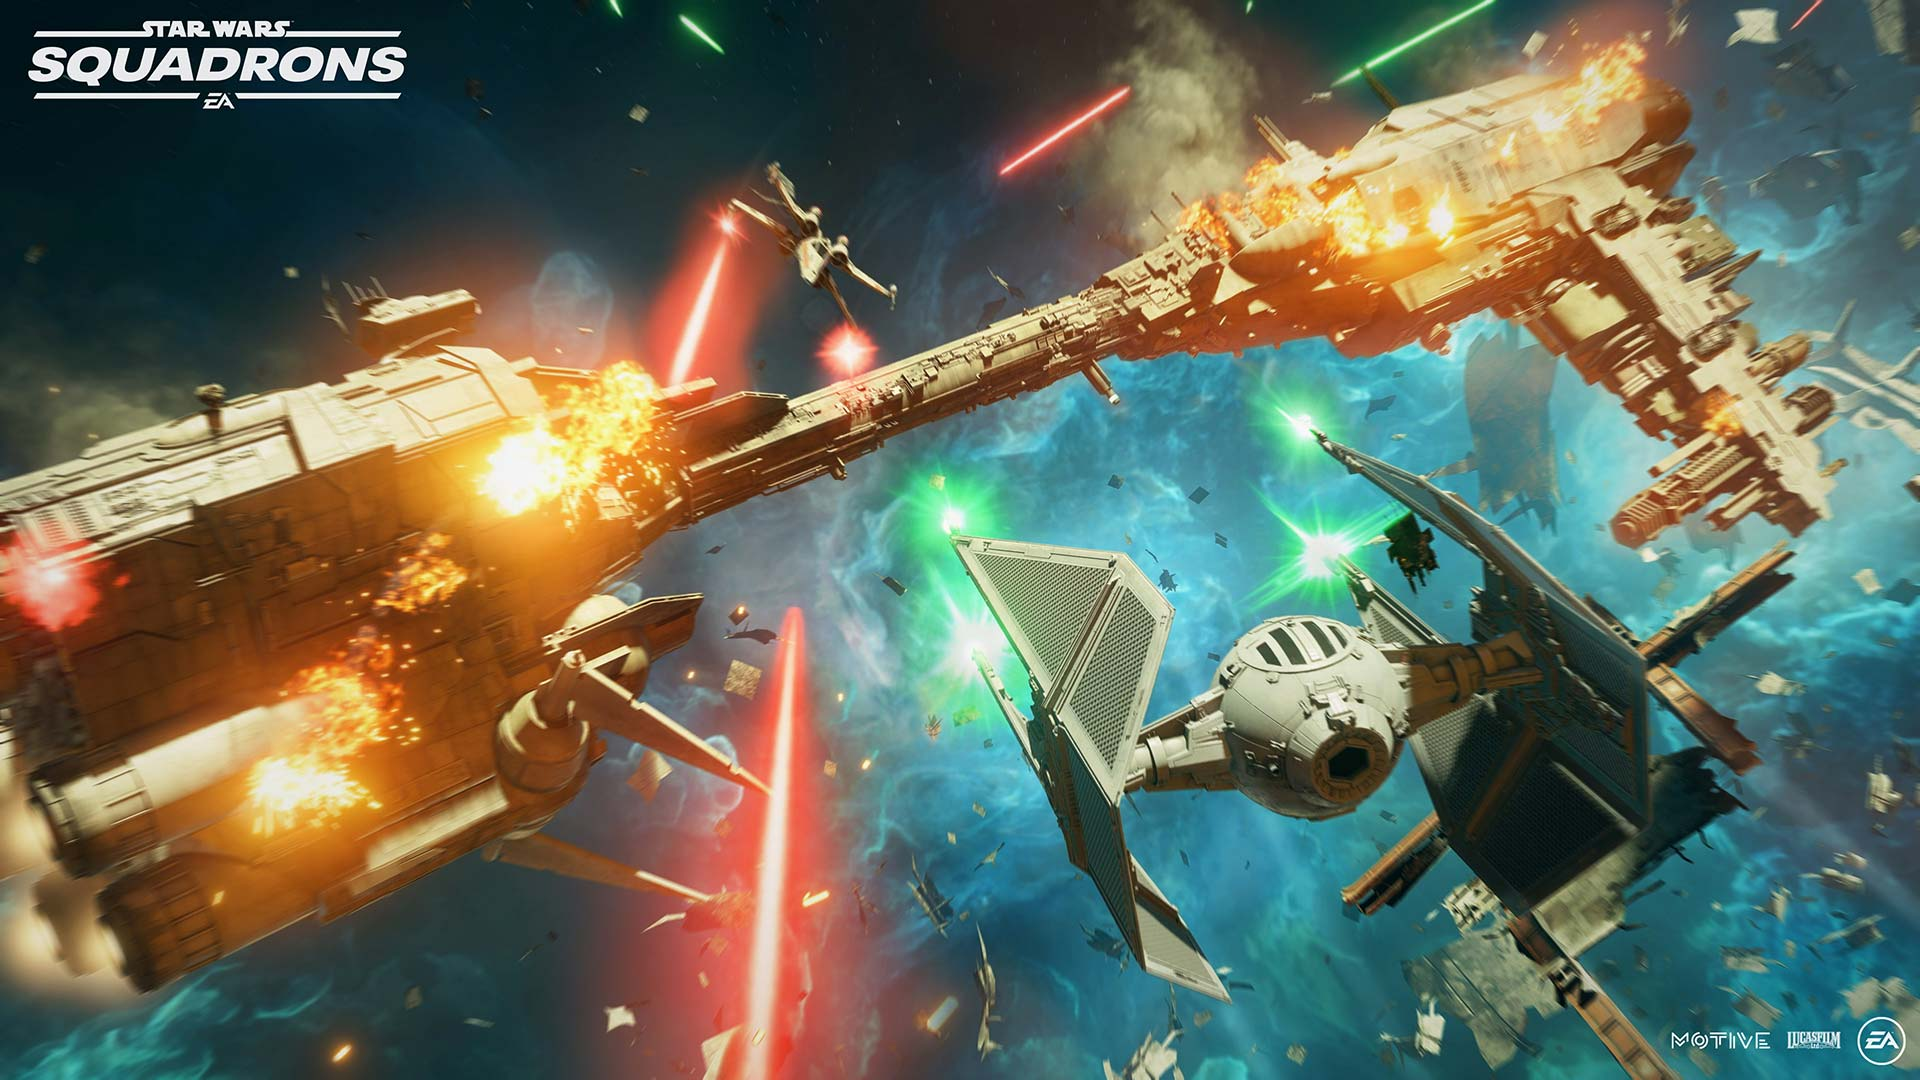 Star Wars Squadrons review image 1